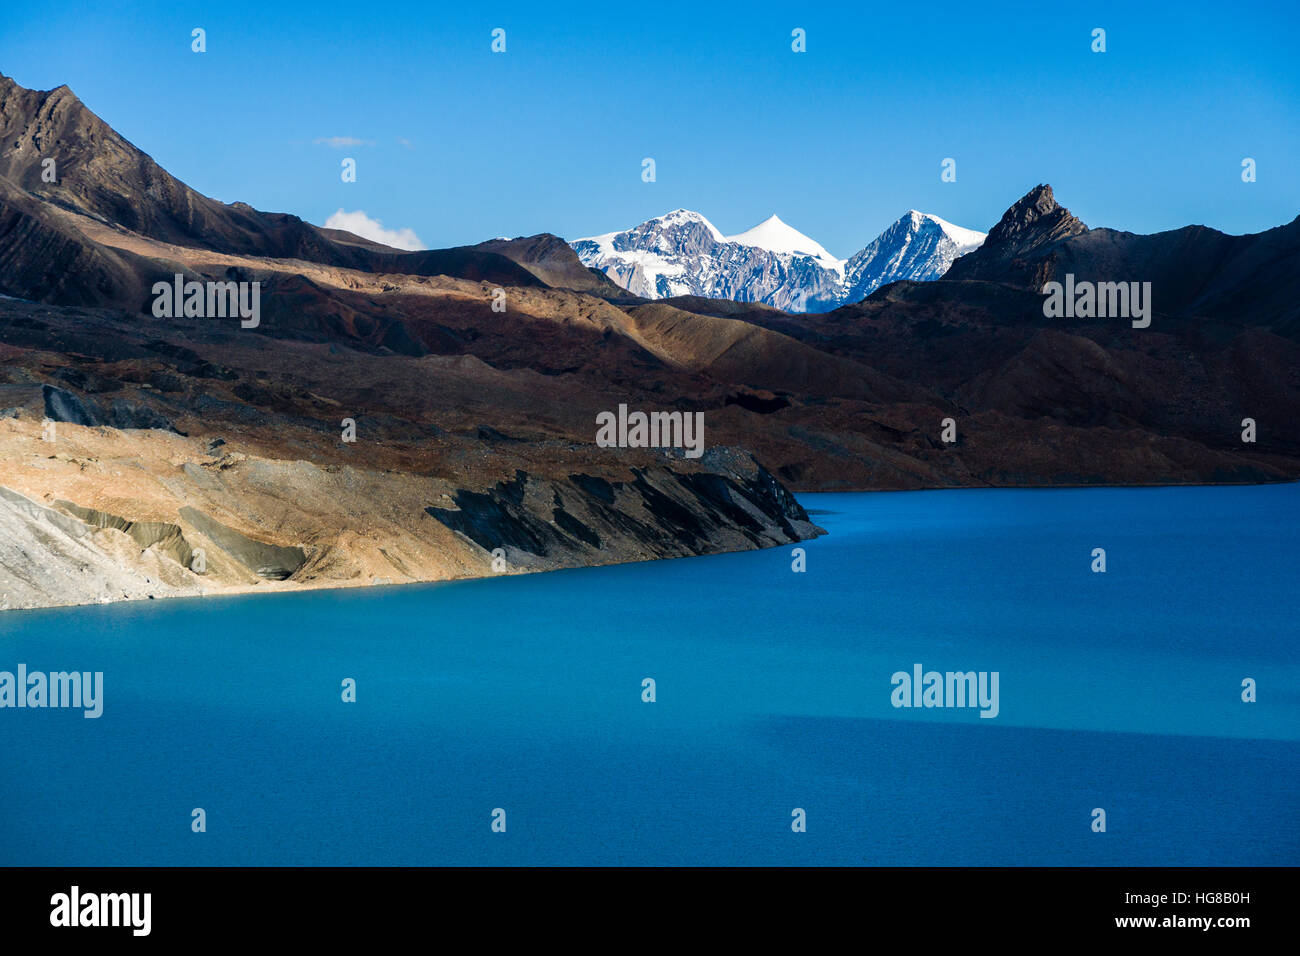 Tilicho Lake, Manang District, Annapurna region, Nepal - Stock Image